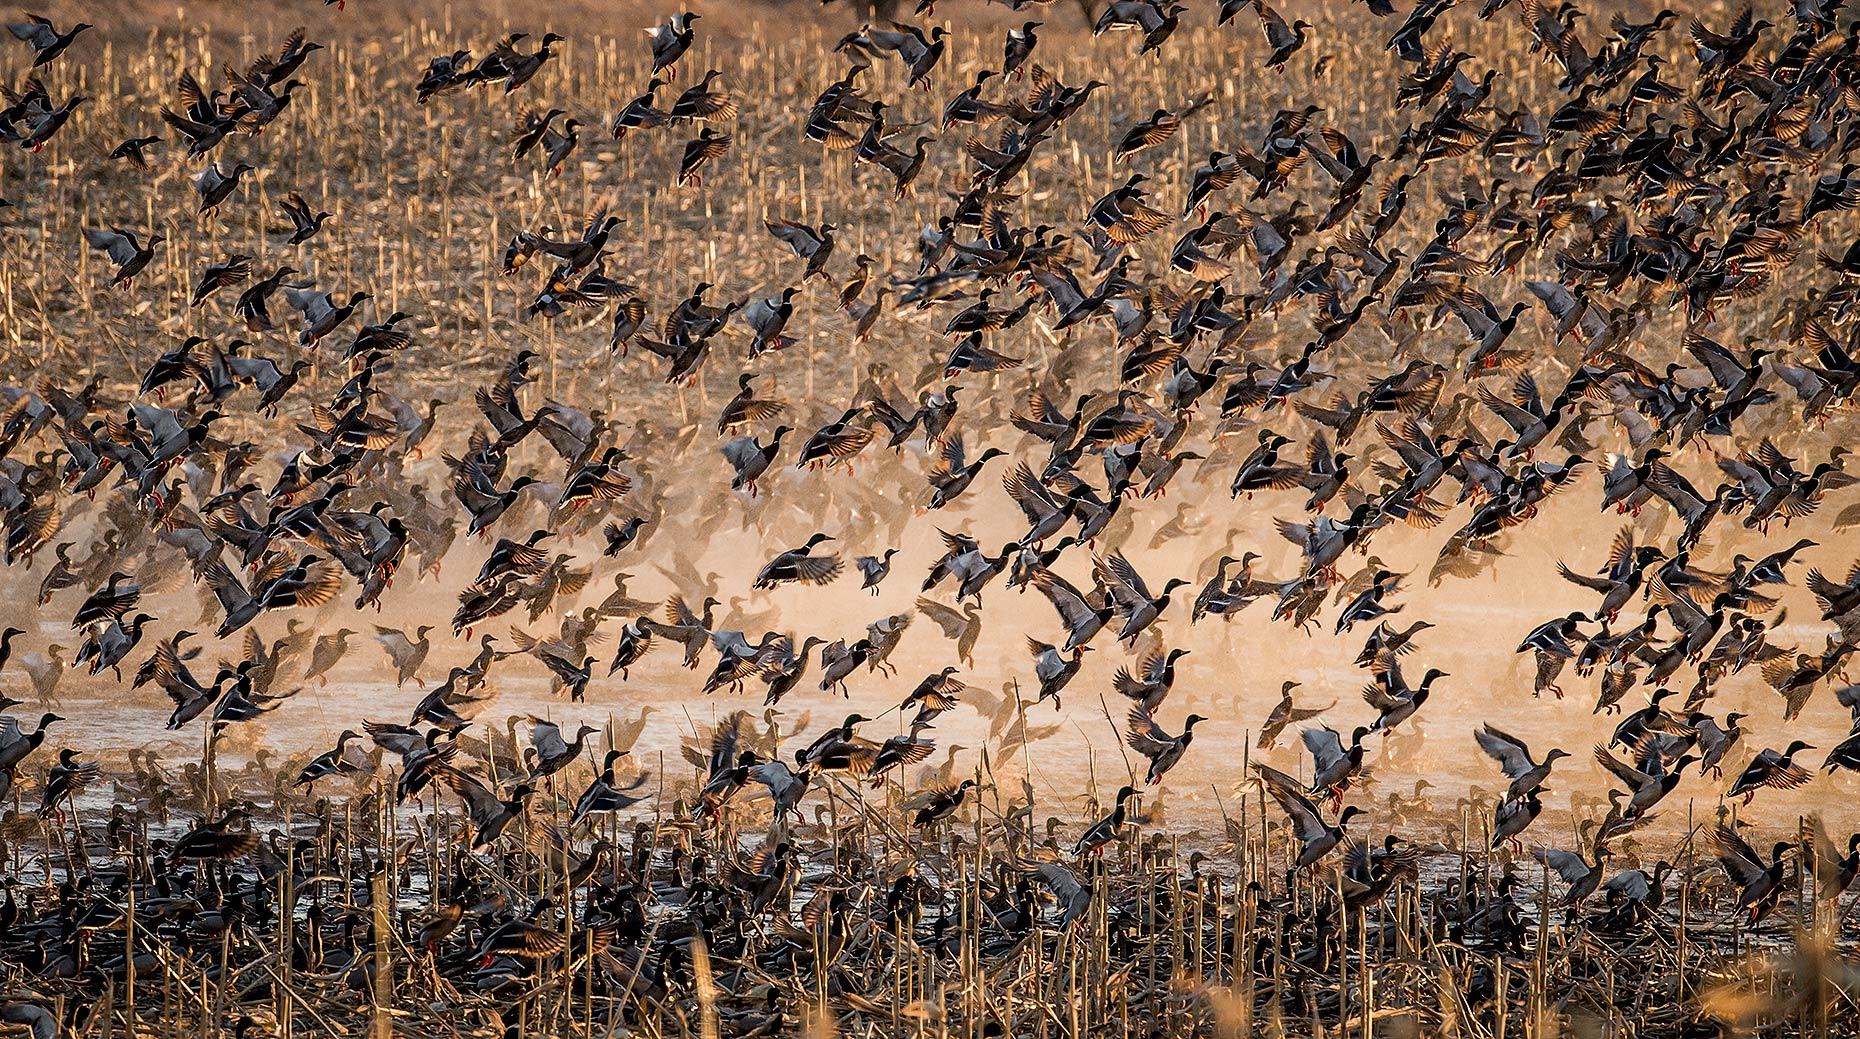 Spring Waterfowl Migration